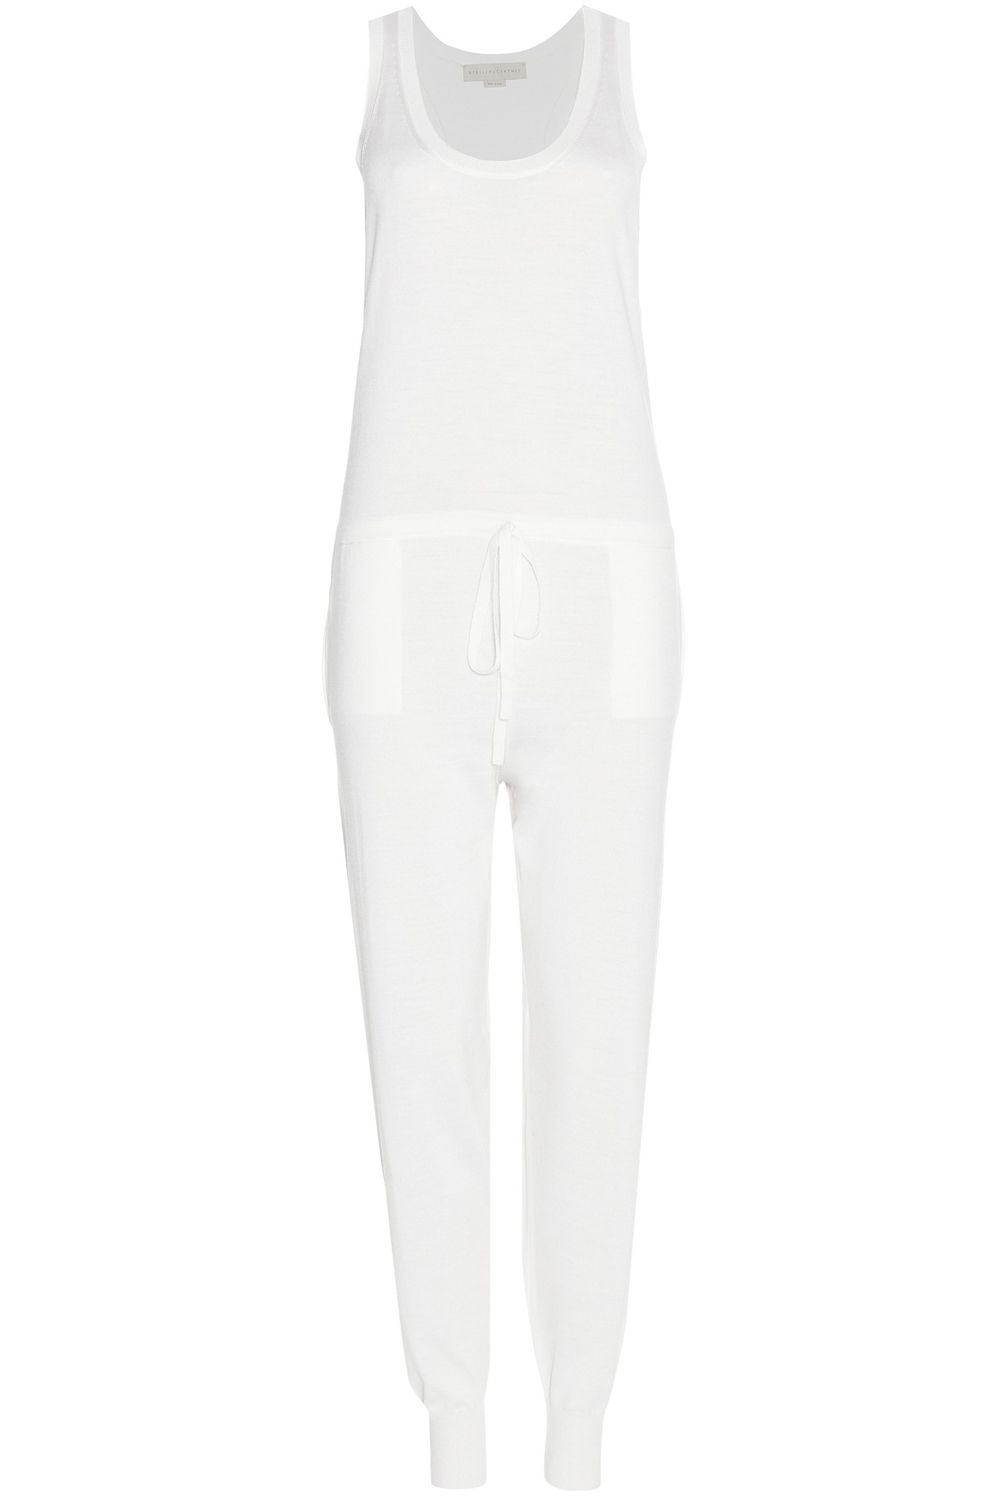 """<p><strong>Stella McCartney</strong> jumpsuit, $1,130, <a href=""""http://www.mytheresa.com/en-us/wool-and-silk-jumpsuit-510245.html?catref=category"""" target=""""_blank"""">mytheresa.com</a>. </p>"""